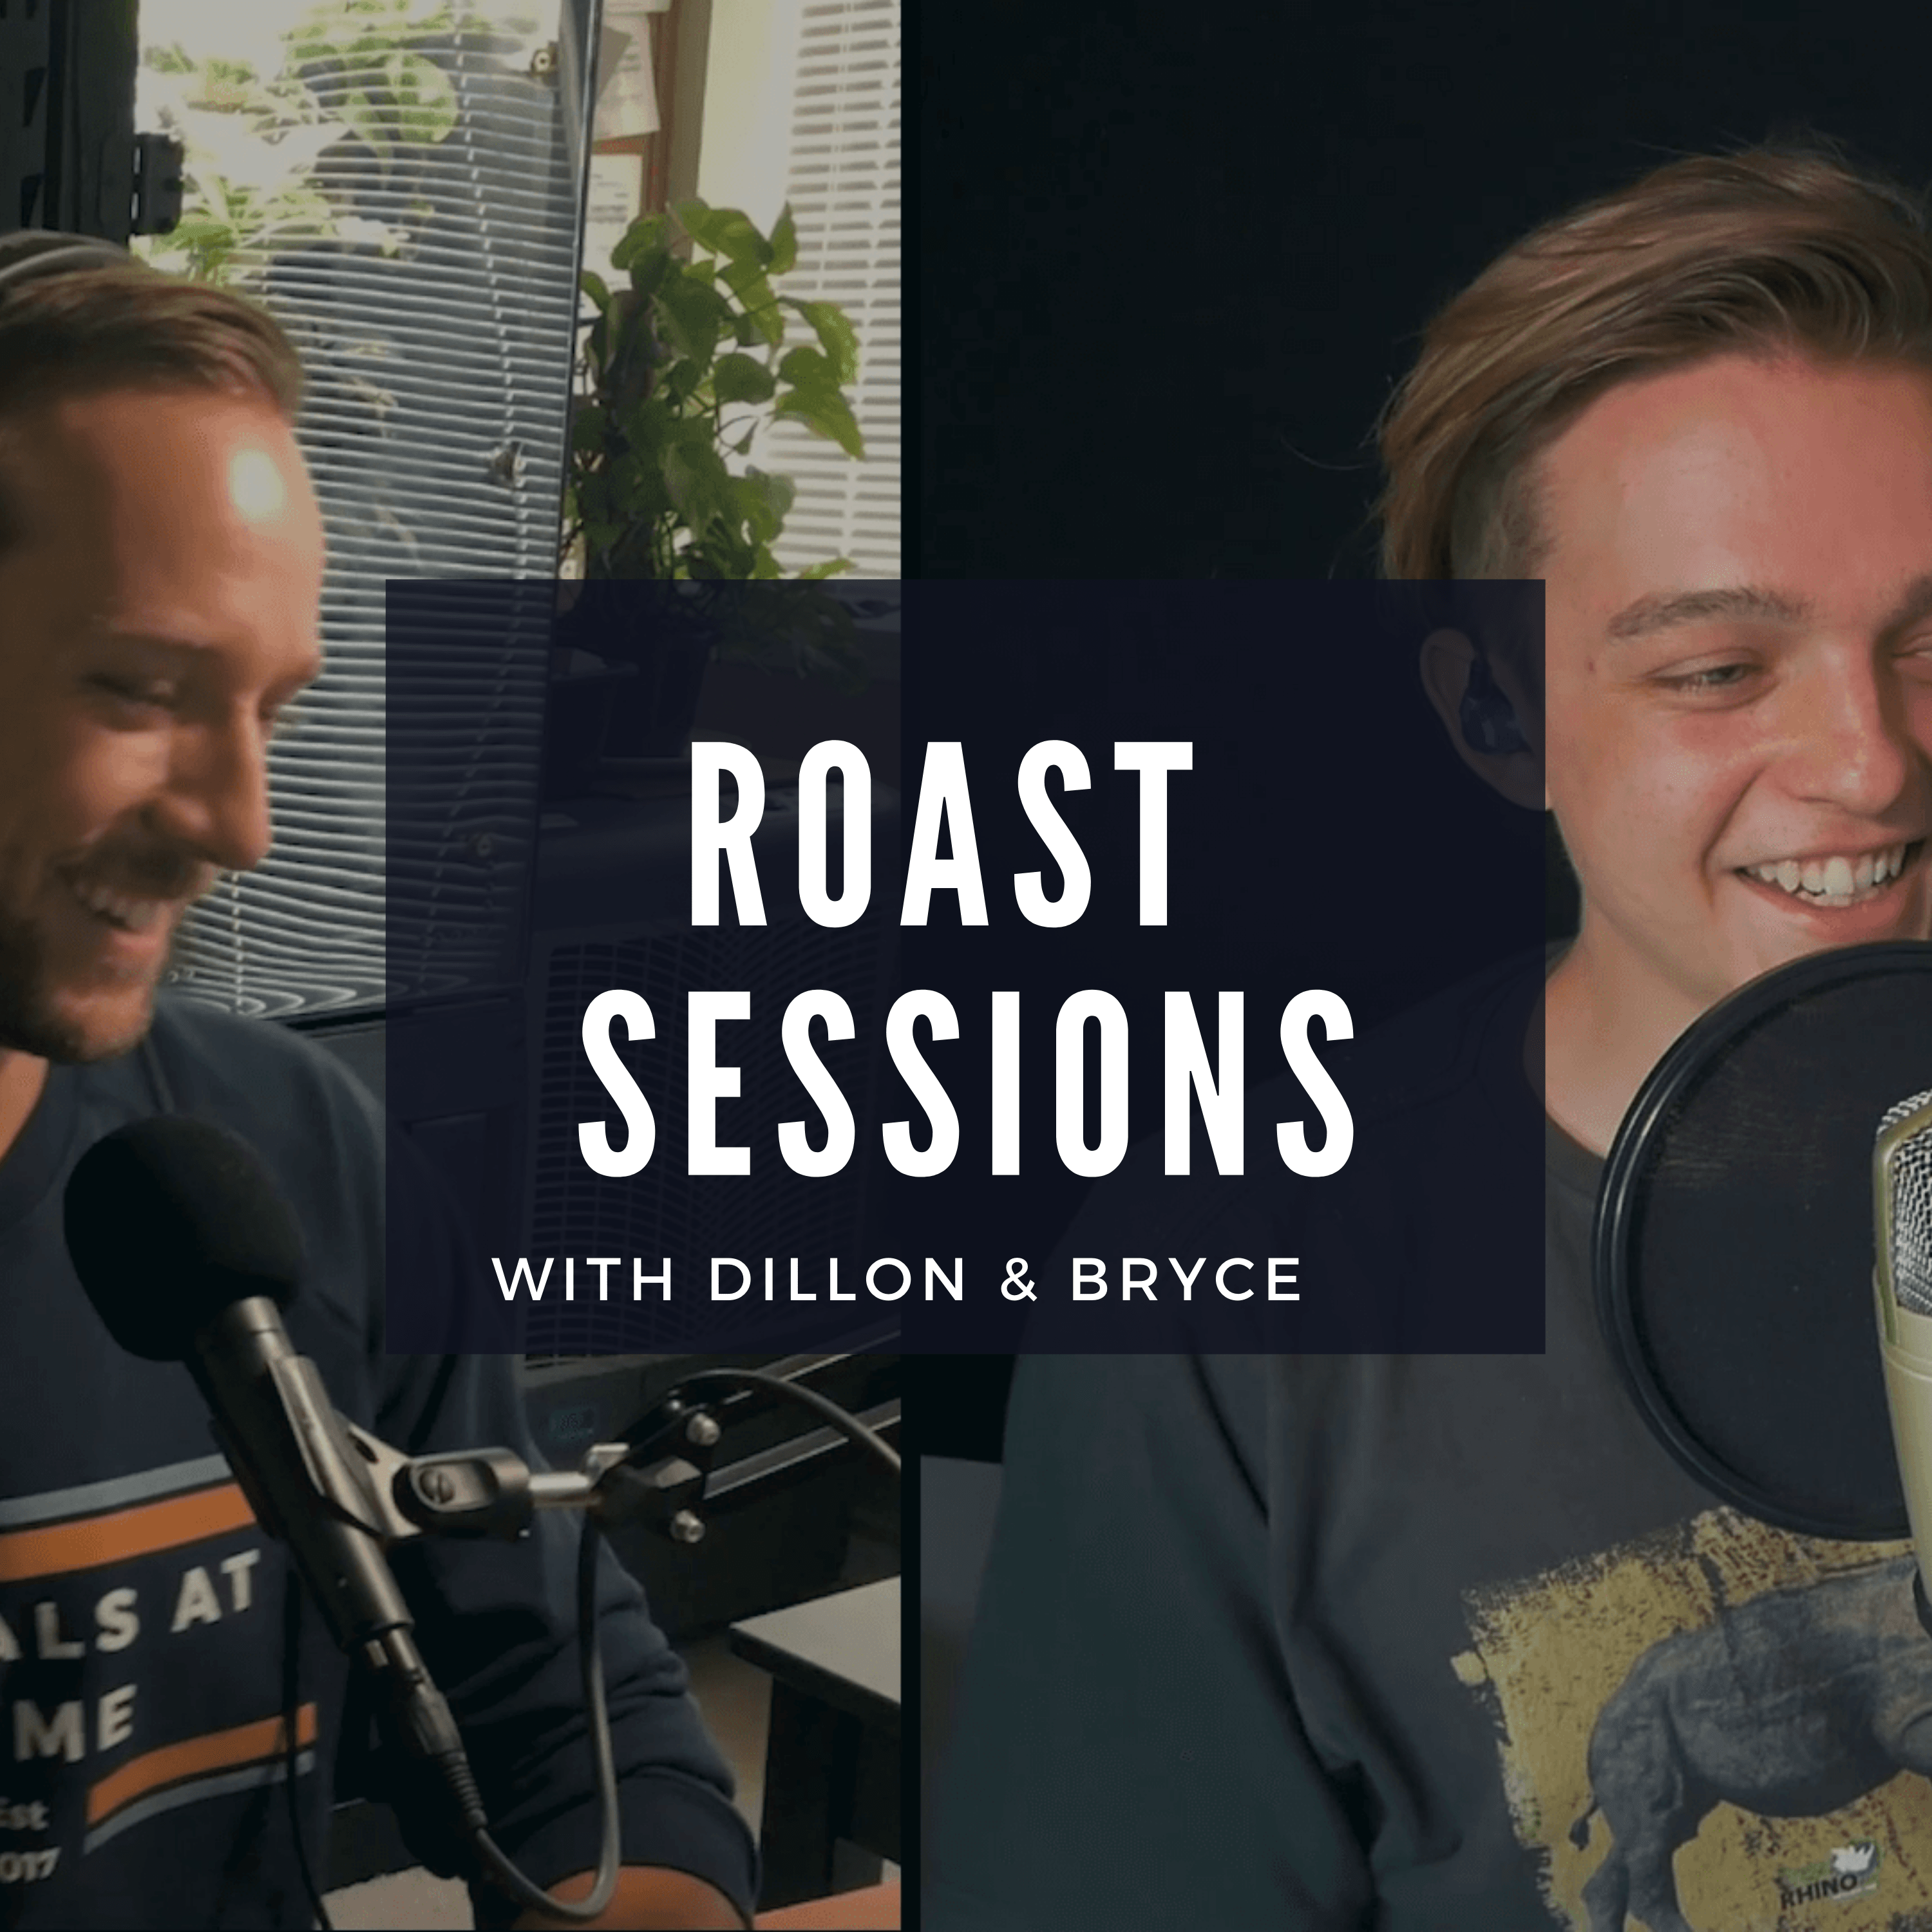 Roast Session 3 | Is it Ethical to feed CRESTED GECKOS TO SNAKES?